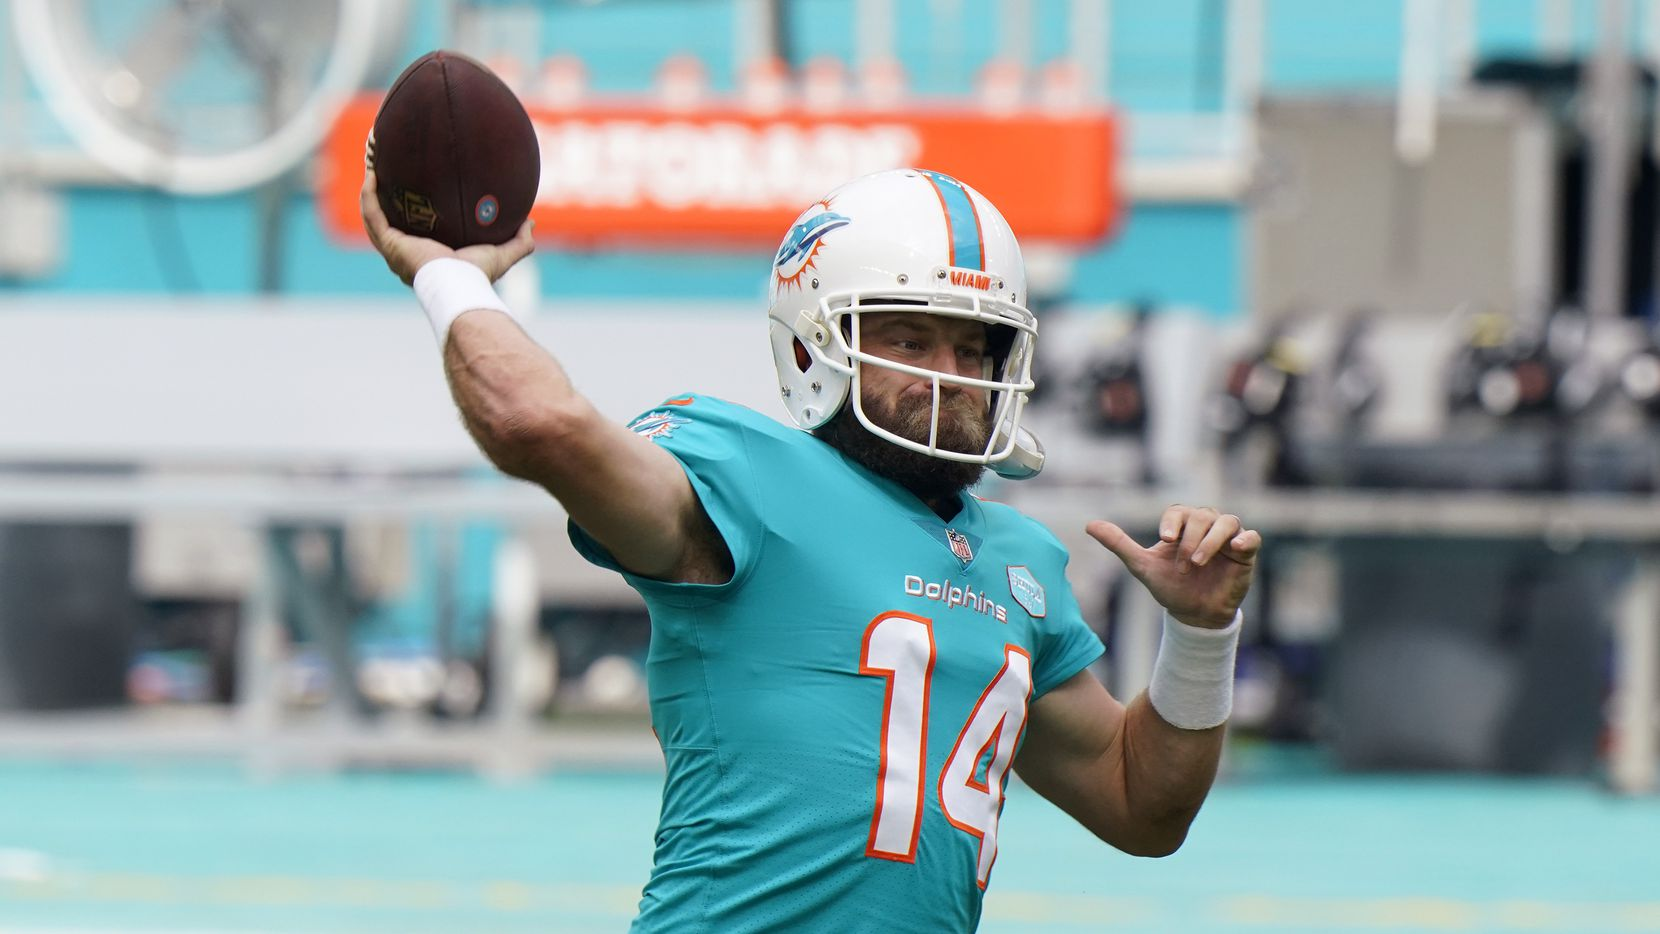 Miami Dolphins quarterback Ryan Fitzpatrick (14) warms up before an NFL football game against the Cincinnati Bengals, Sunday, Dec. 6, 2020, in Miami Gardens, Fla. The Miami Dolphins need a good game Sunday to ensure they get to keep playing, and that's especially true for Tua Tagovailoa. Coach Brian Flores has benched Tagovailoa twice in the fourth quarter, including last week at Las Vegas, when backup quarterback Ryan Fitzpatrick helped Miami overcome a pair of deficits in the final 10 minutes.